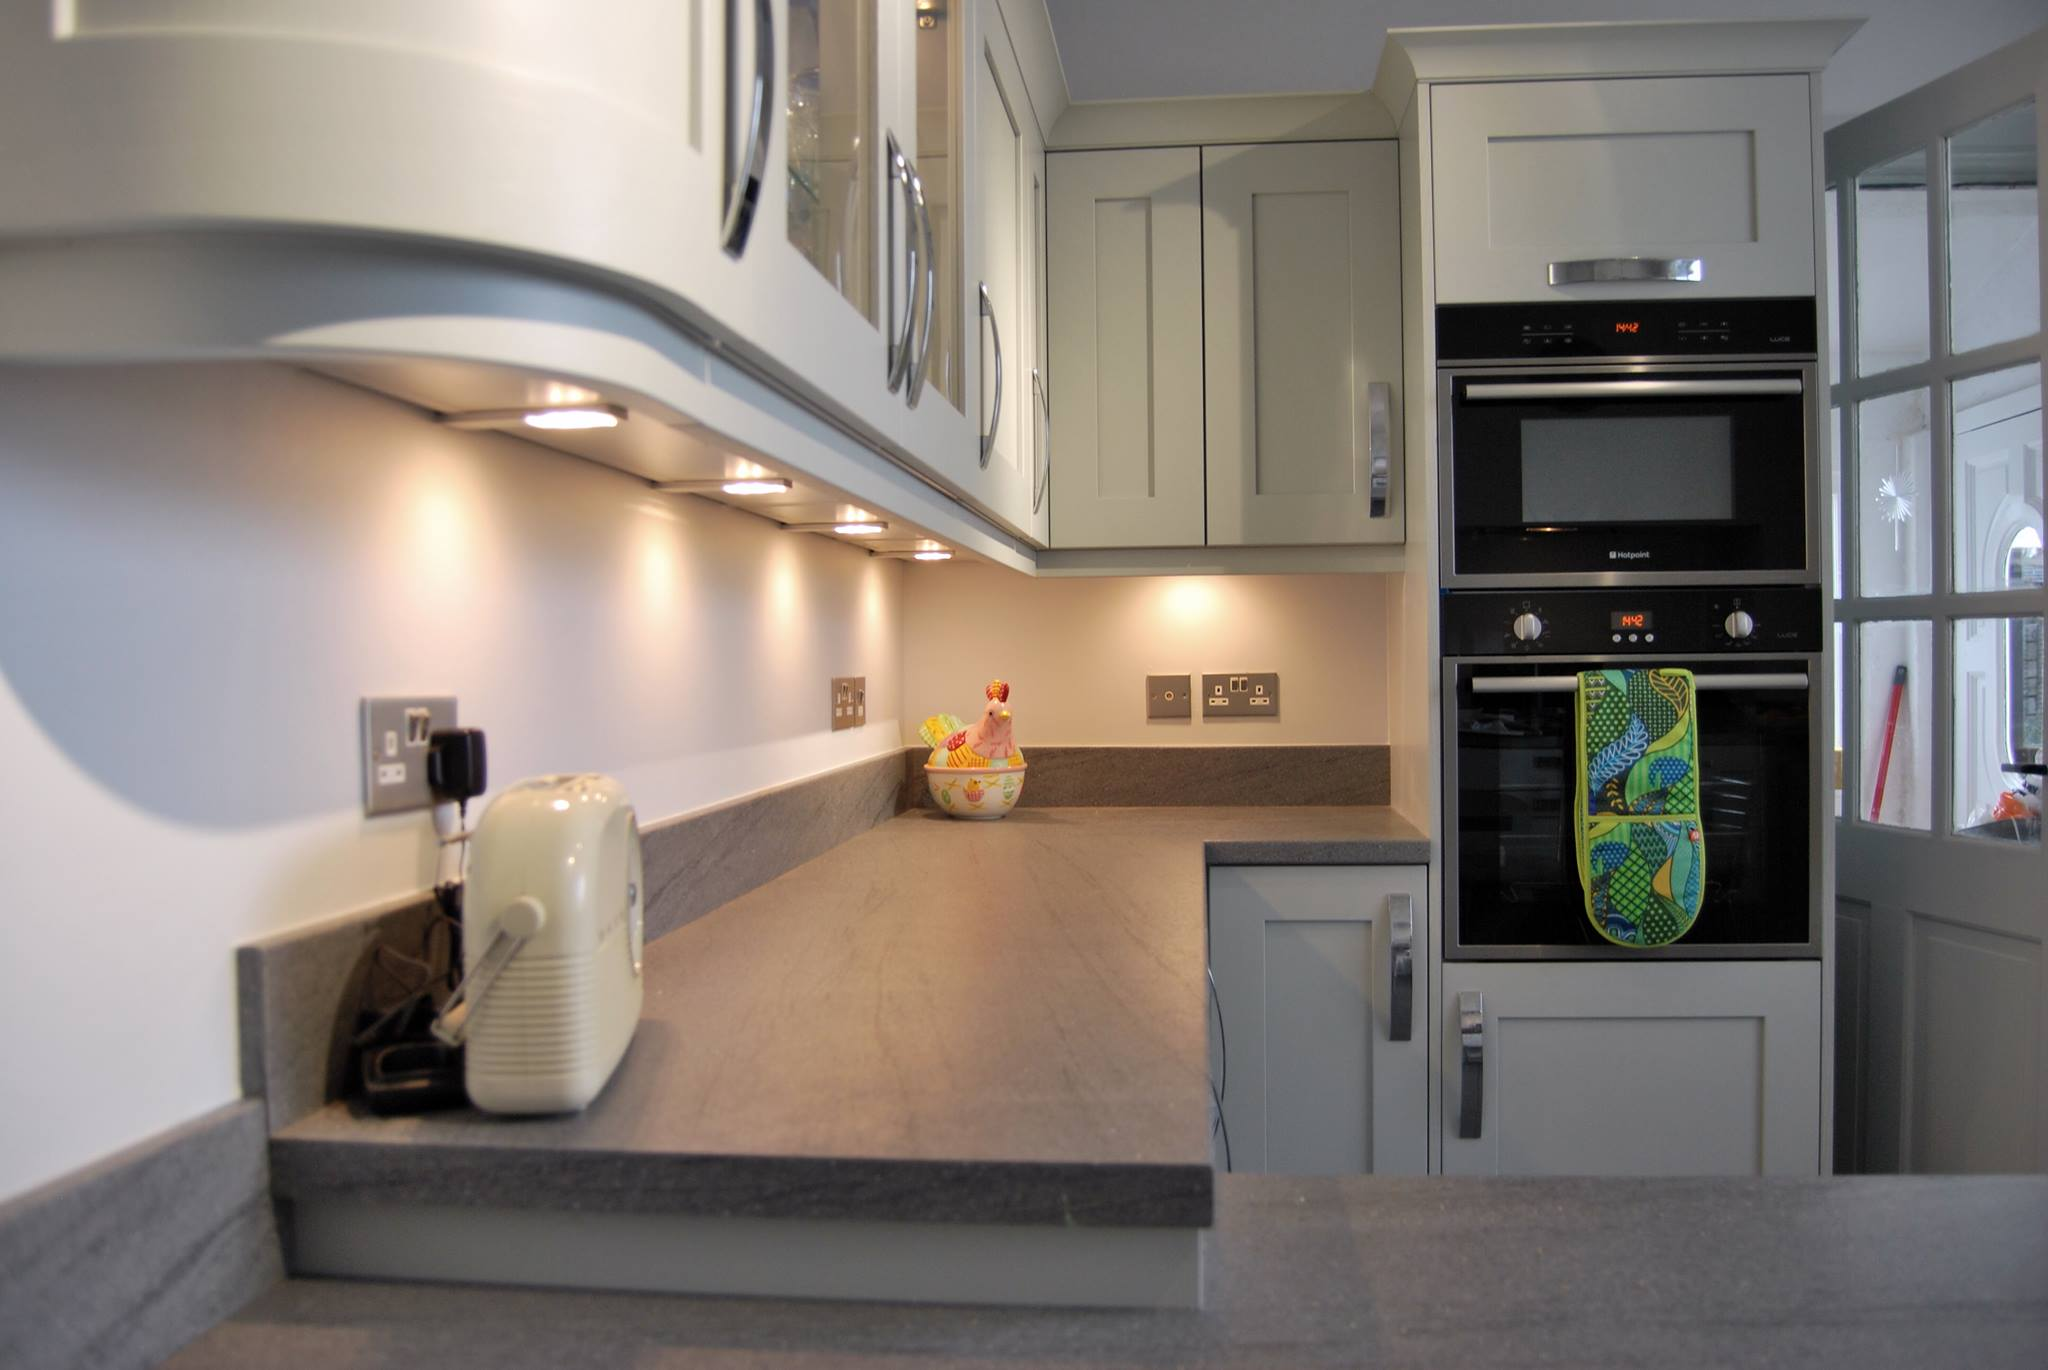 mulberry kitchen design reviews - customers love our kitchen company!